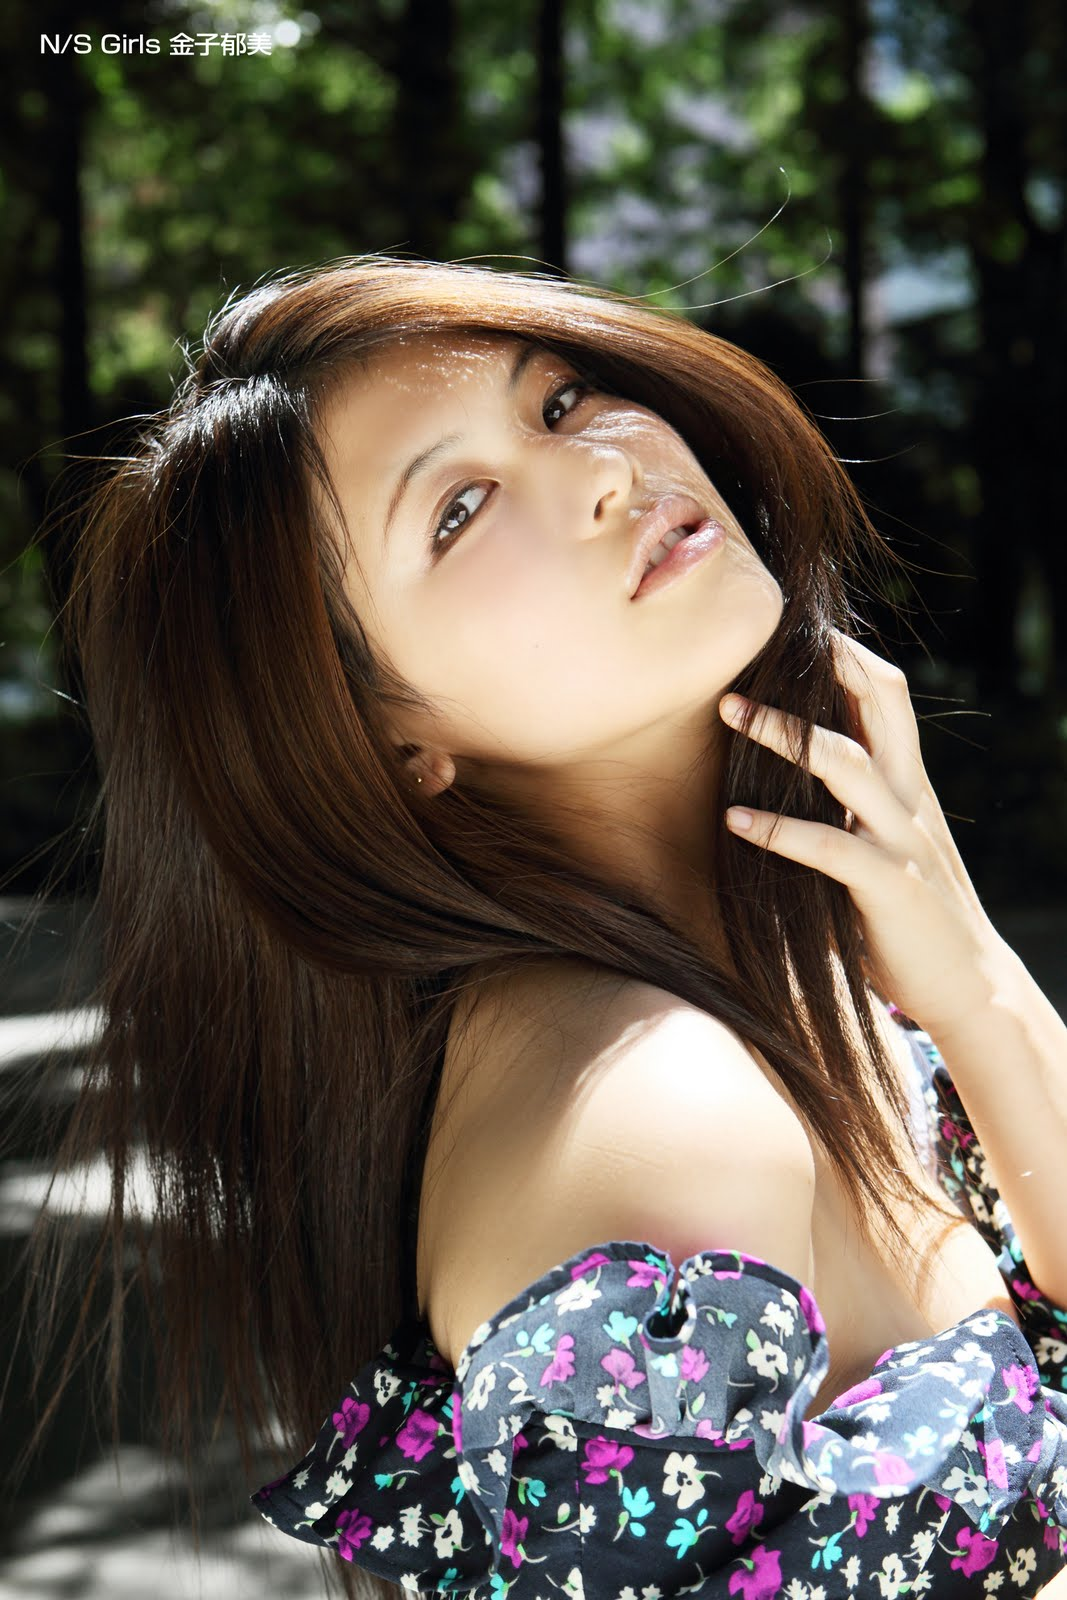 Stunning Japanese girl that I dont known their name